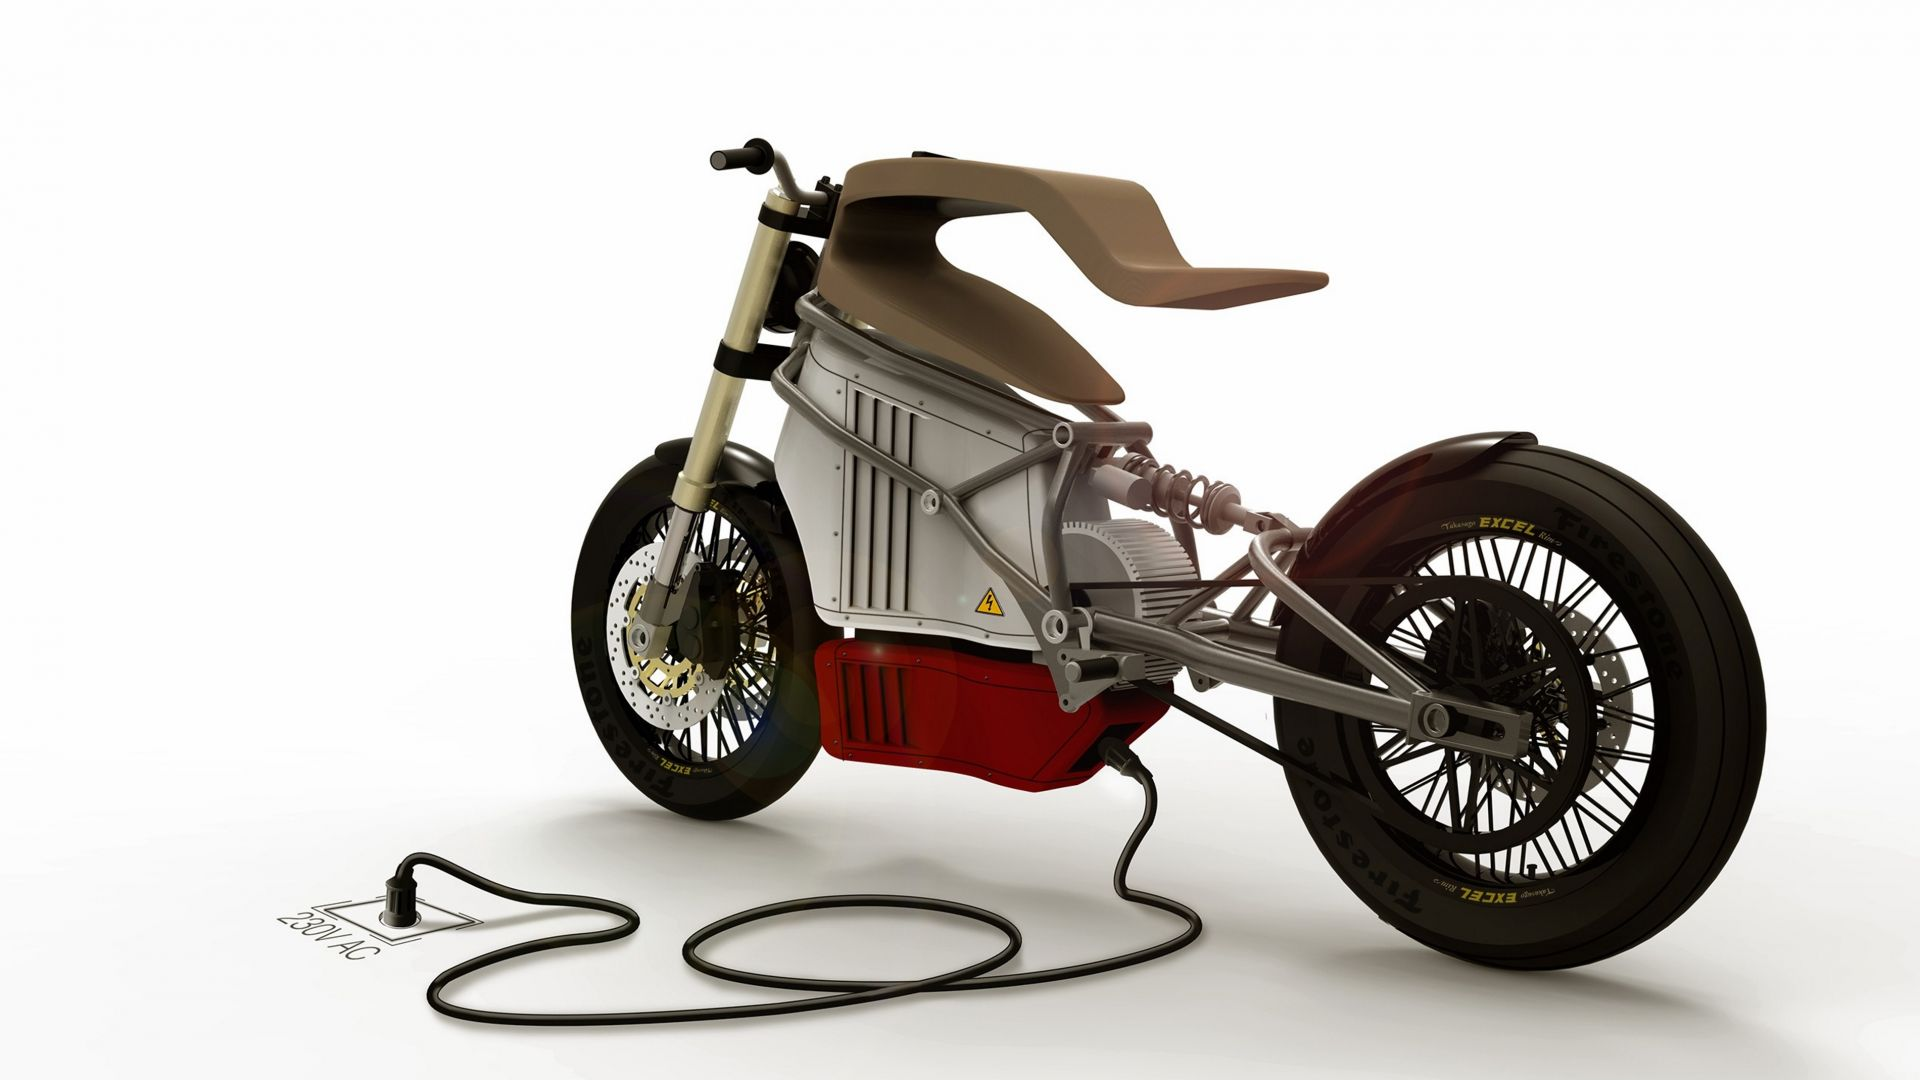 wallpaper e-raw, electric, motorcycle, racer, motorcycles of future